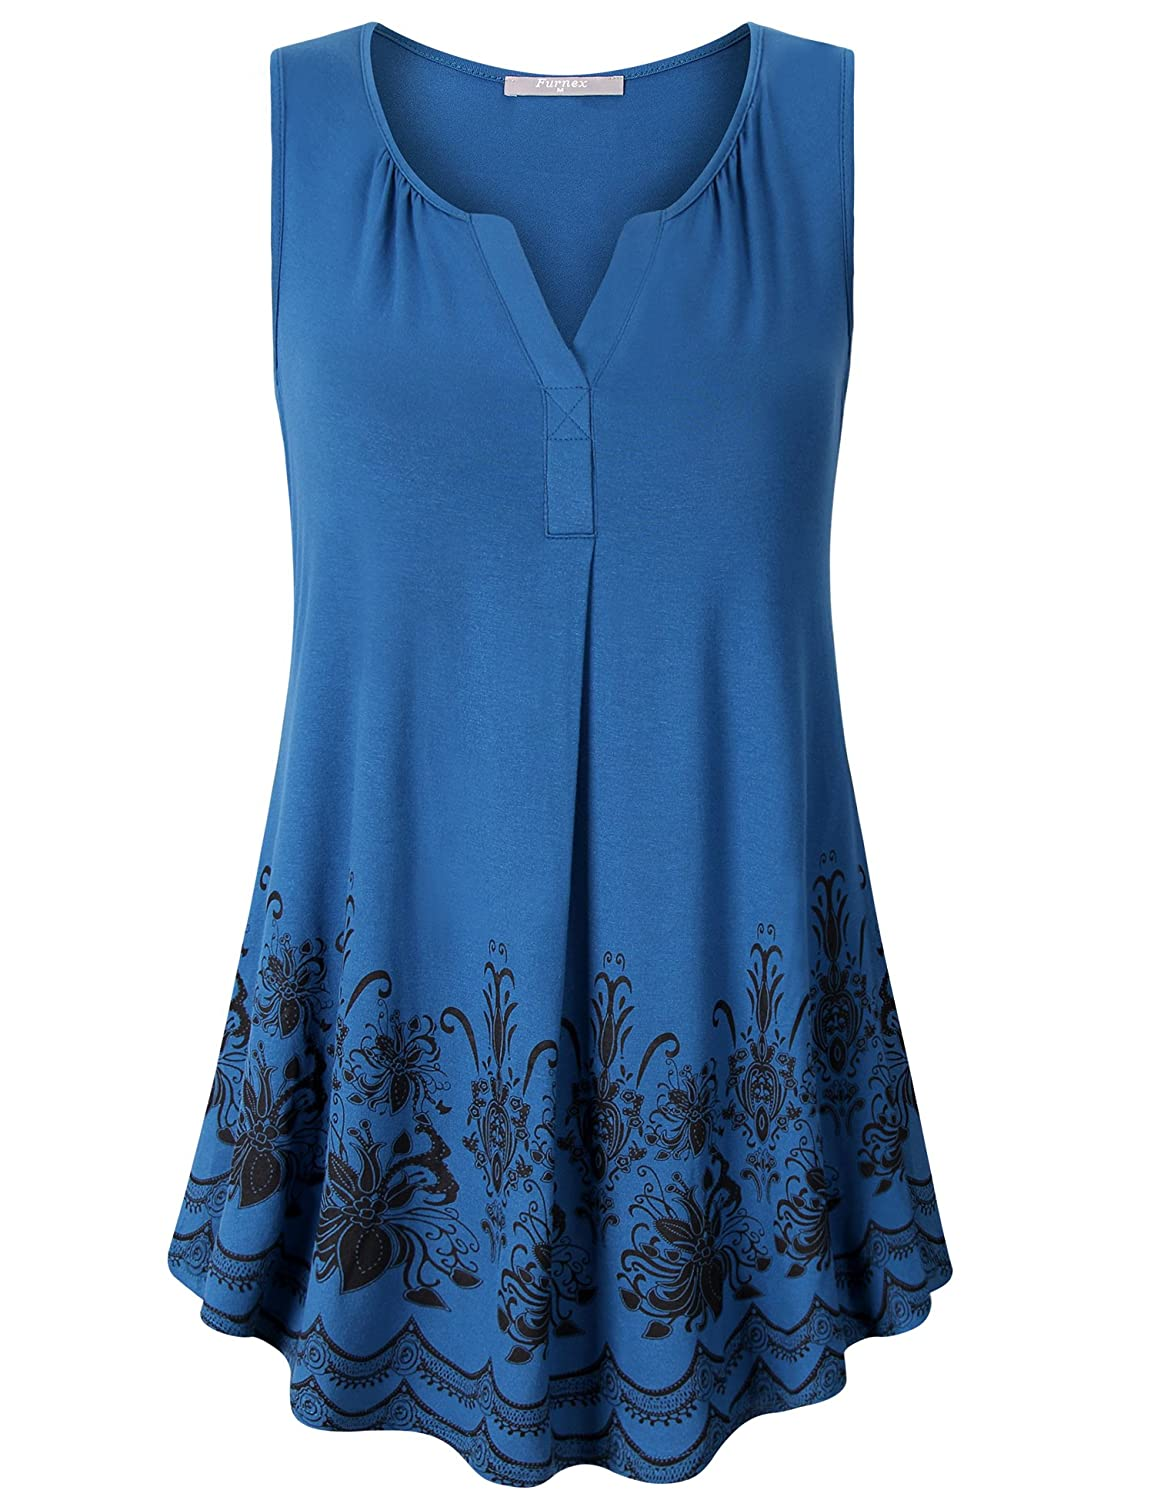 80b66a263cc Furnex Women\'s Summer Sleeveless Tunics Floral Casual Loose Comfy Flowy Tank  Tops Model # AD13 These sleeveless floral tunic tanks are super soft and ...